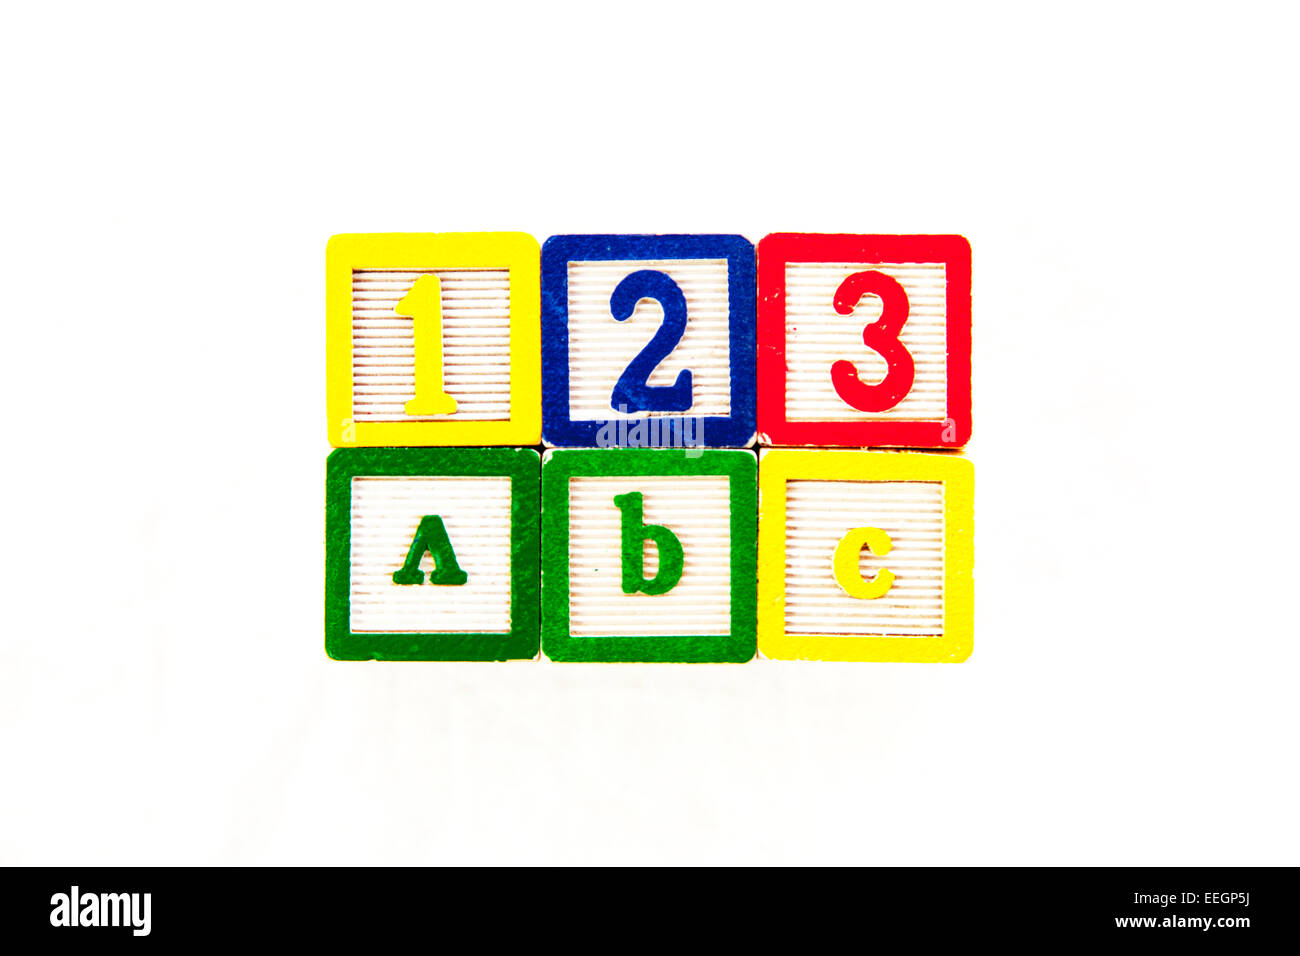 123 ABC education numbers words learning learn educate school schooling word blocks cut out copy space white background - Stock Image